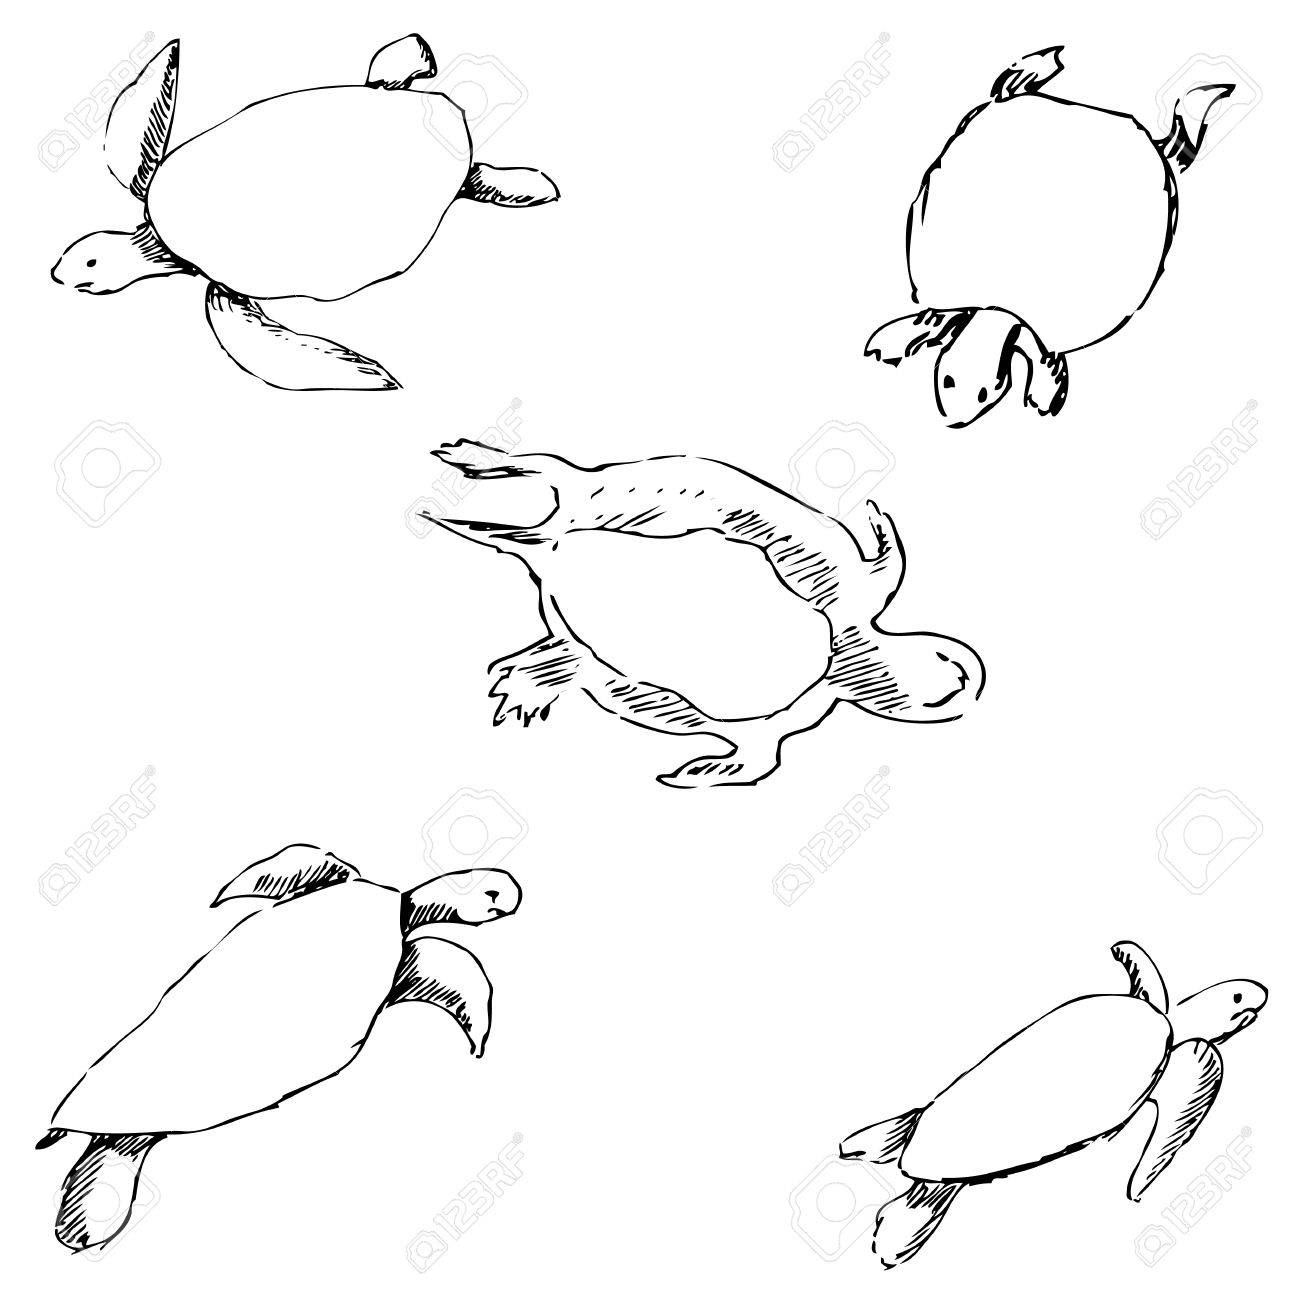 Turtles pencil sketch by hand vector image